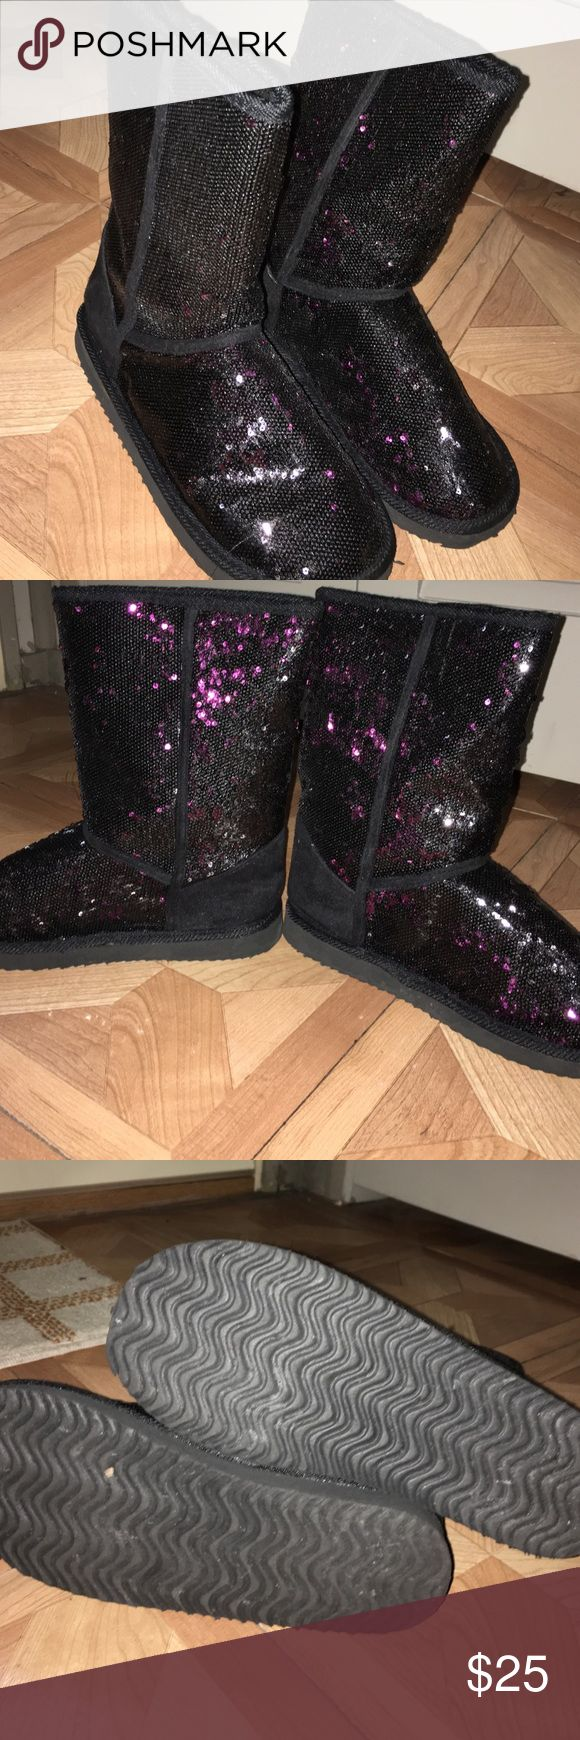 Black and purple glitter boots Winter boots, maybe only been worn once very warm! Shoes Winter & Rain Boots